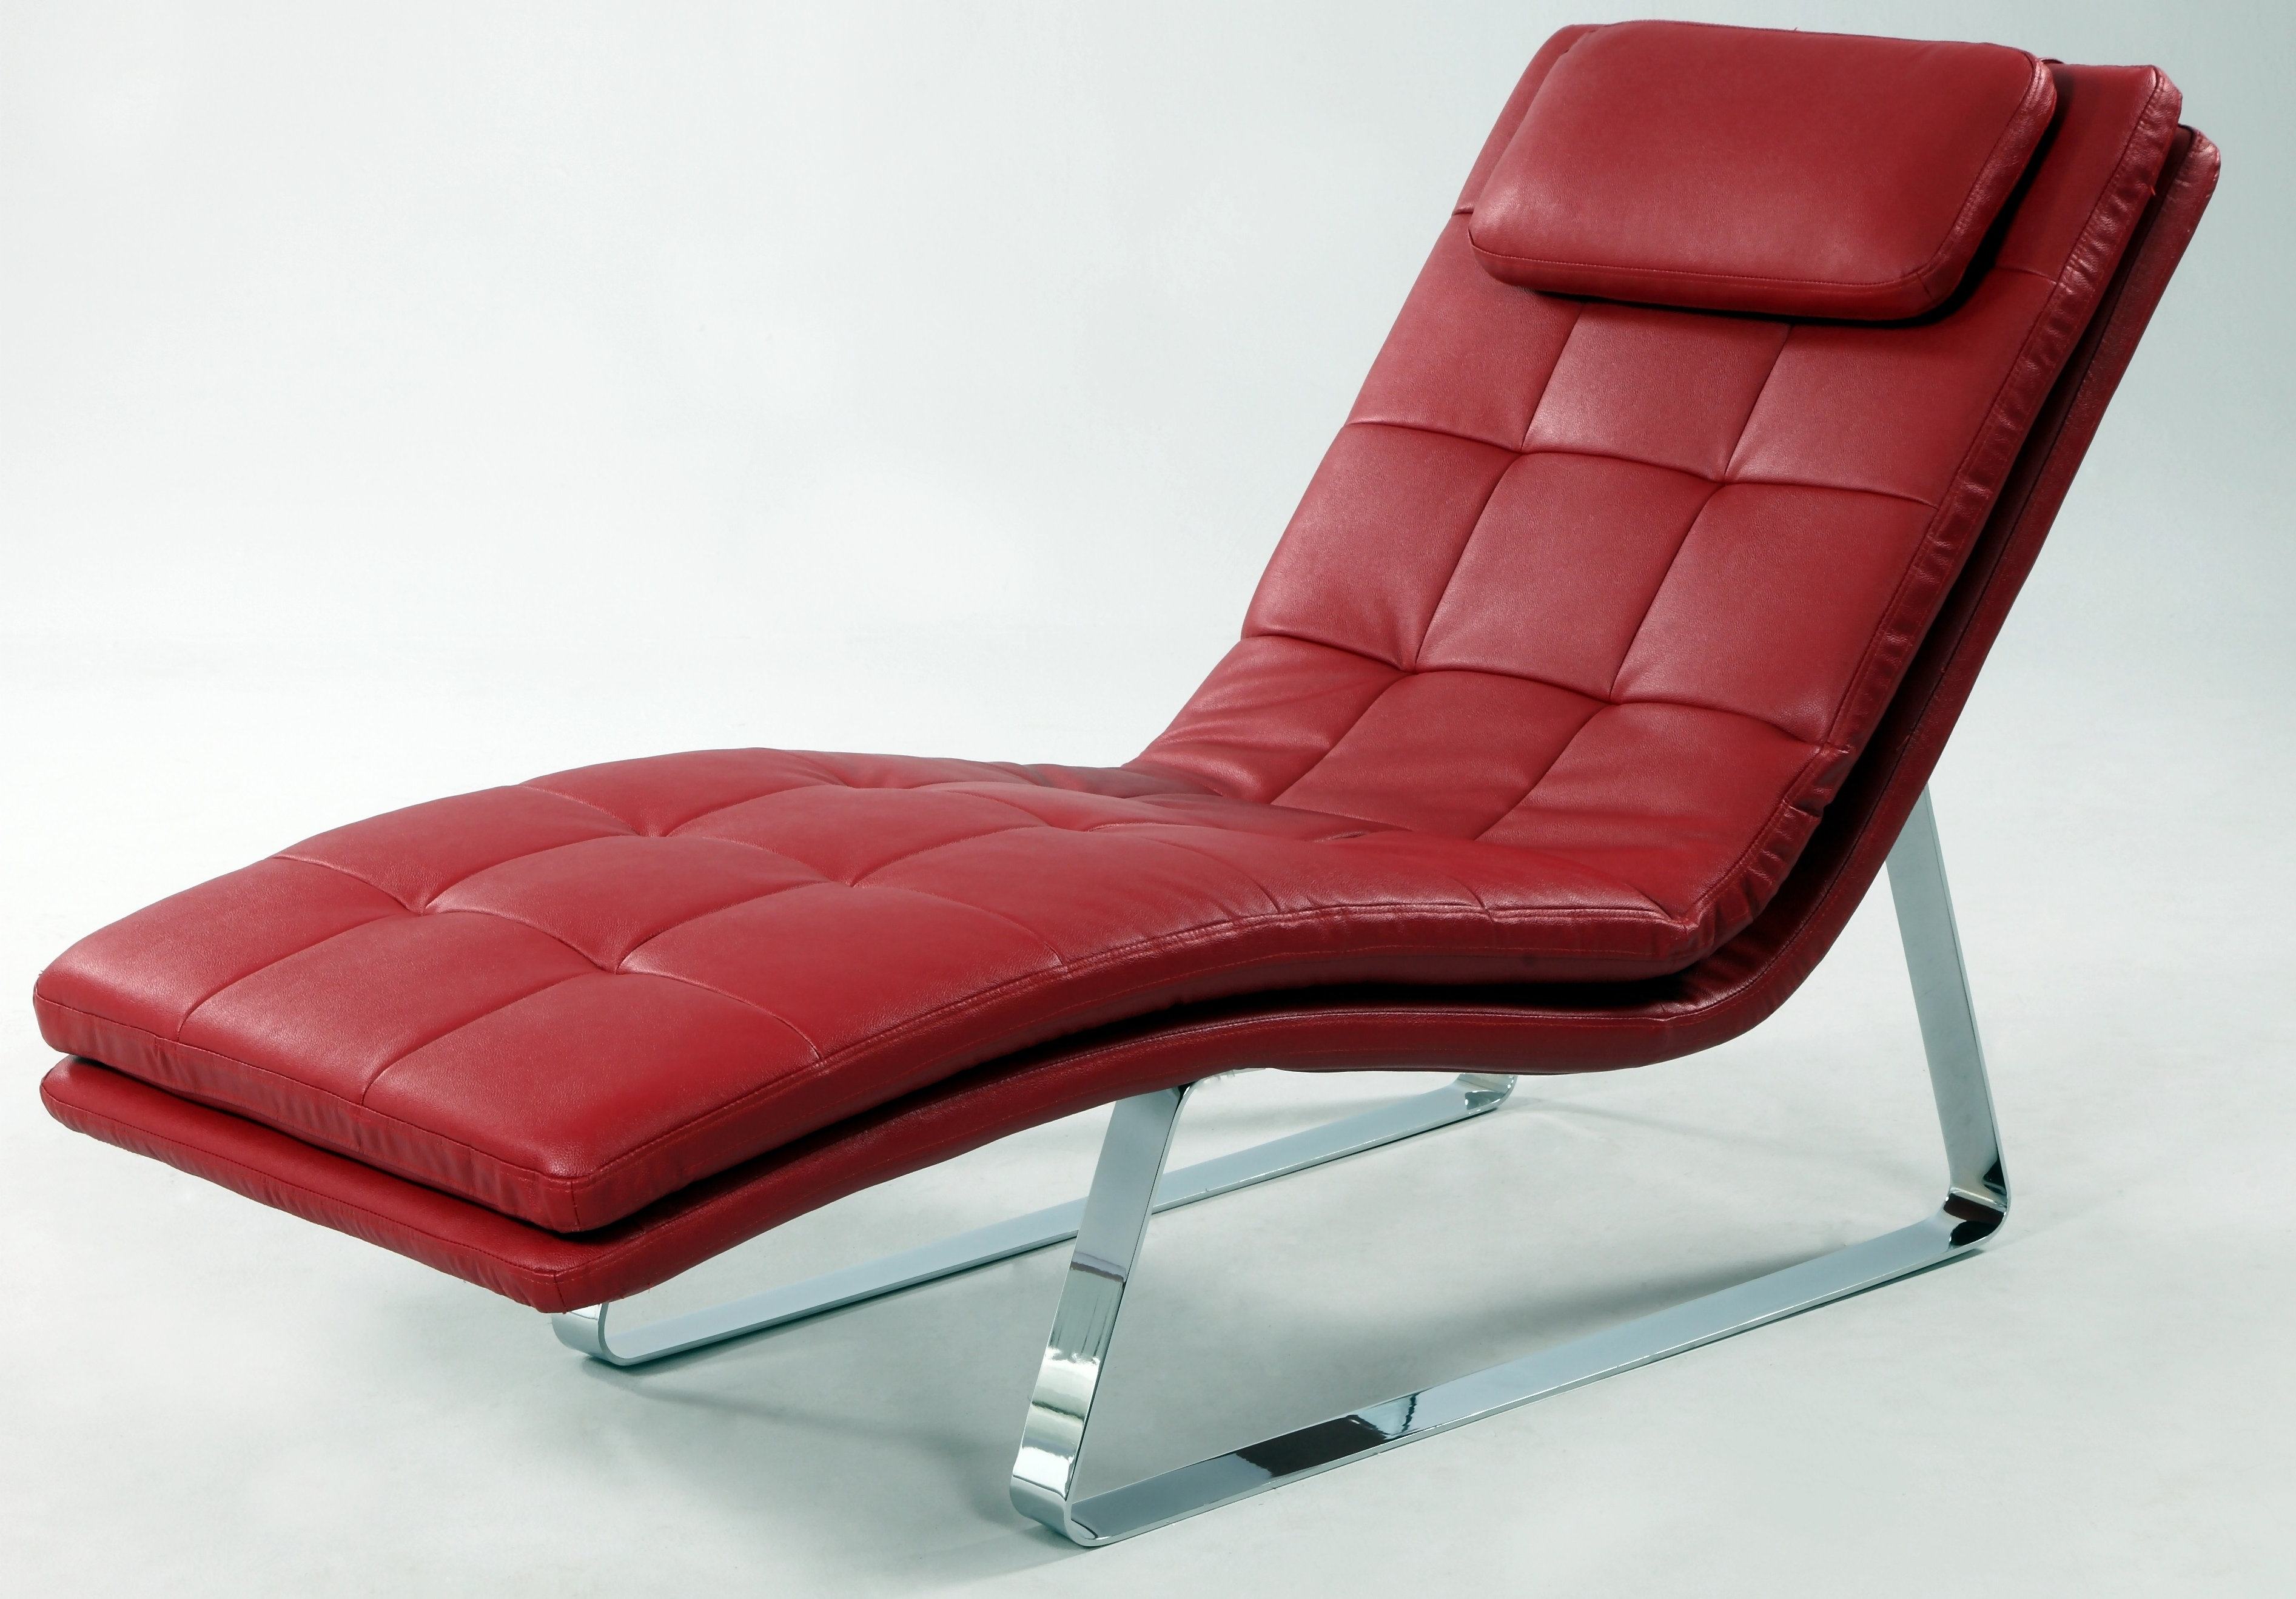 Favorite Full Bonded Leather Tufted Chaise Lounge With Chrome Legs New York Within Red Leather Chaises (View 3 of 15)